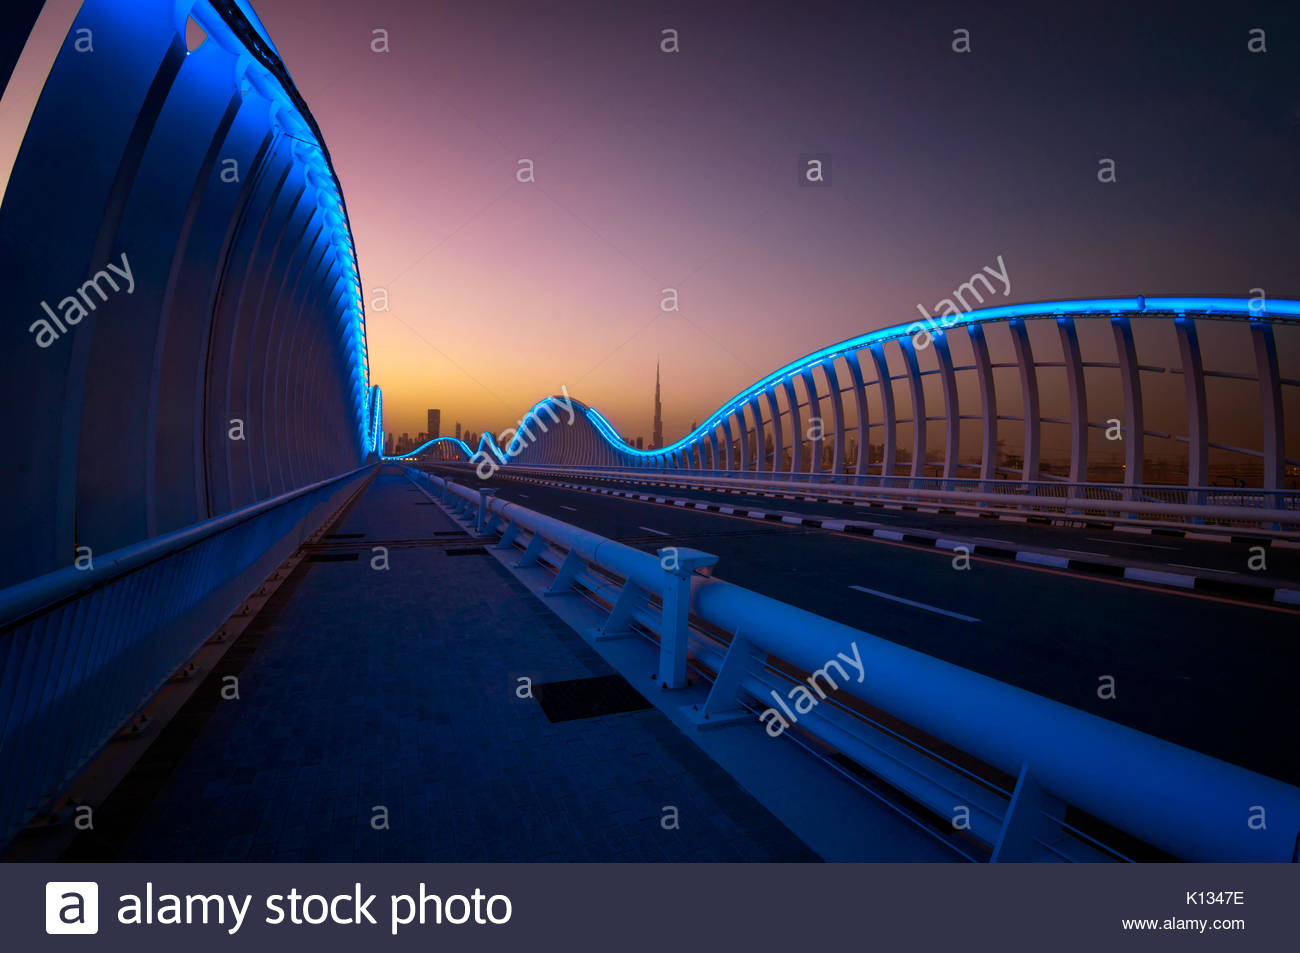 Amazing night dubai VIP bridge with beautiful sunset. Private road to Meydan race course, Dubai, United Arab Emirates - Stock Image